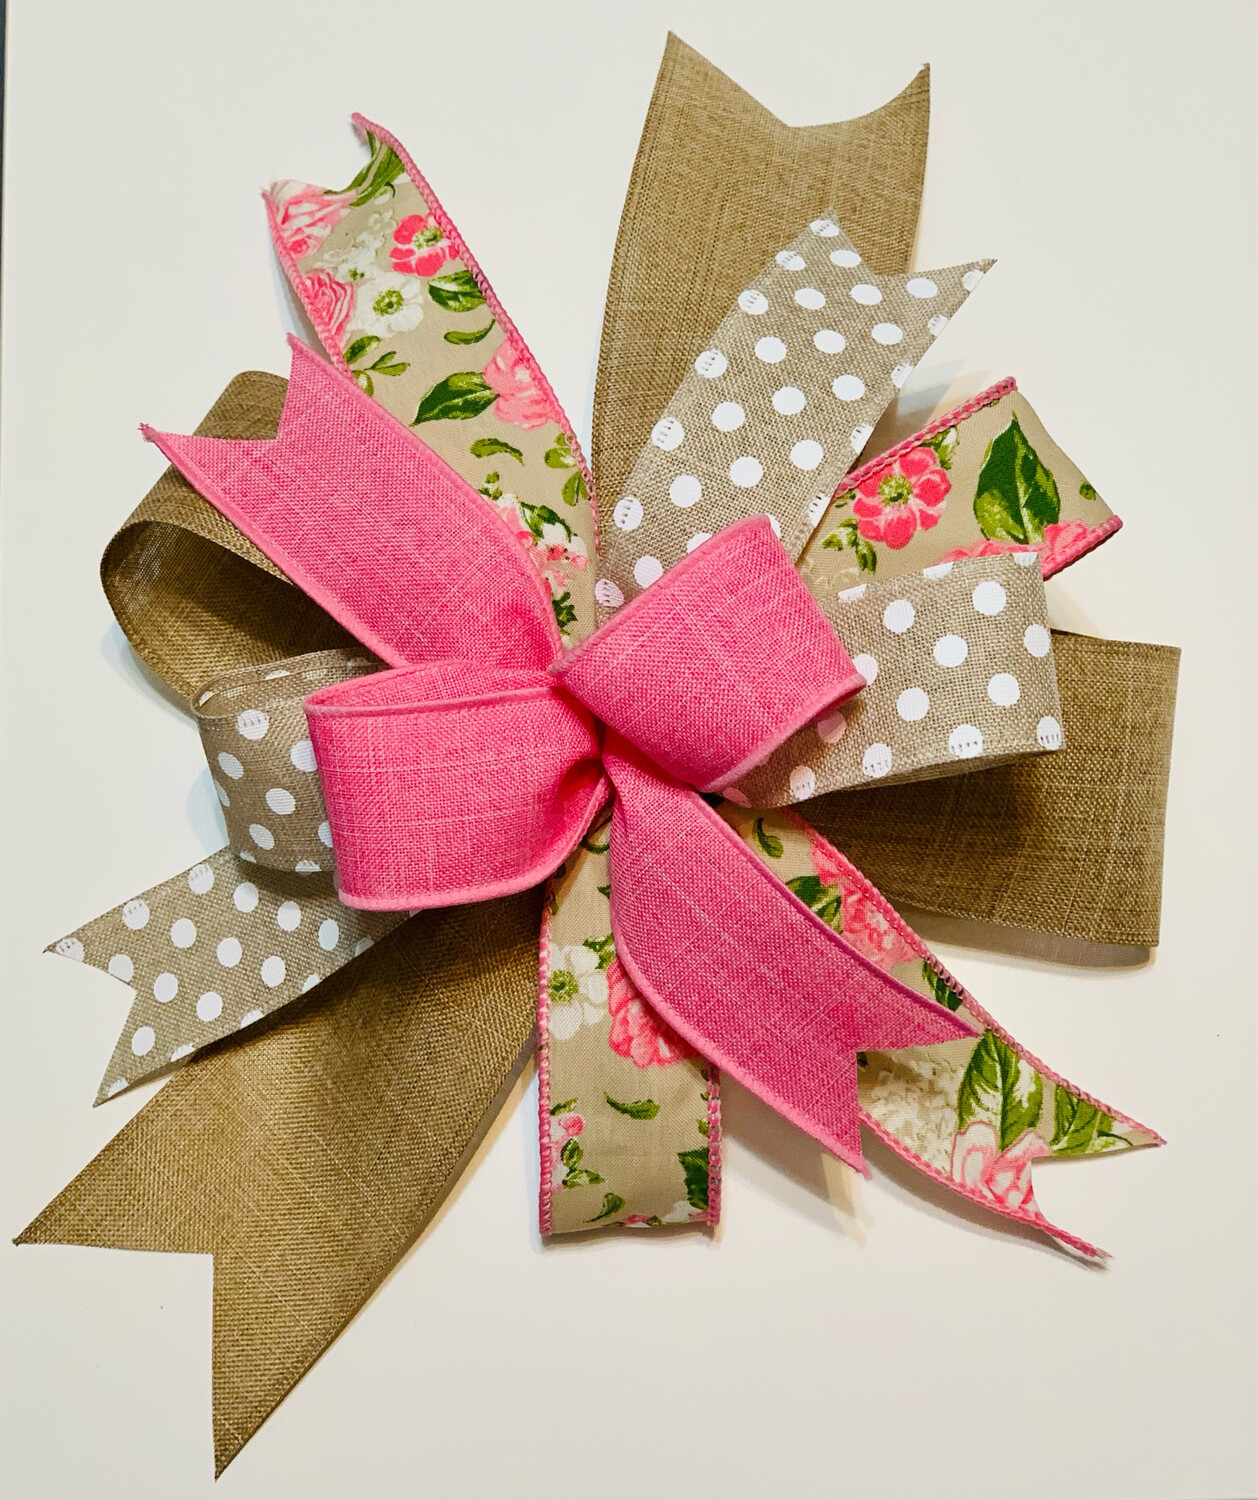 Spring Summer Bow for Wreath, Mother's Day, A Touch of Faith